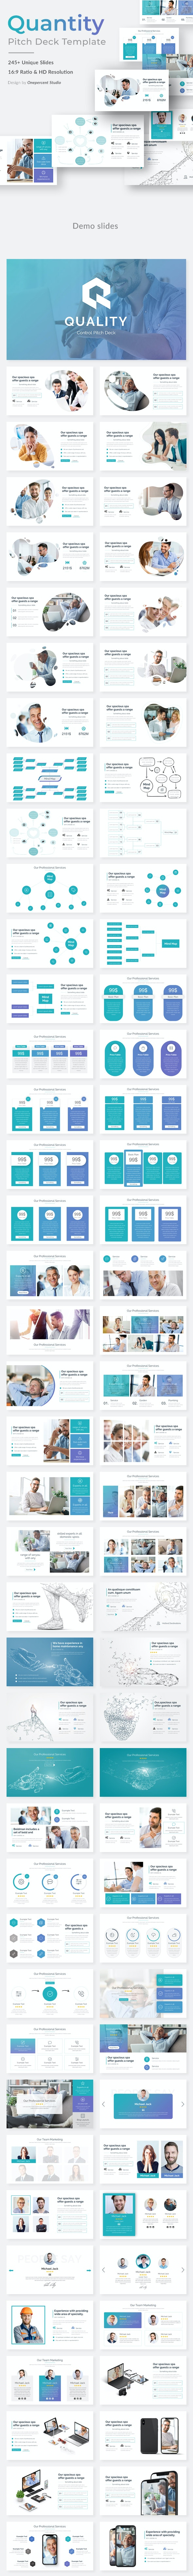 Quality Control Pitch Deck Google Slide Template - Google Slides Presentation Templates